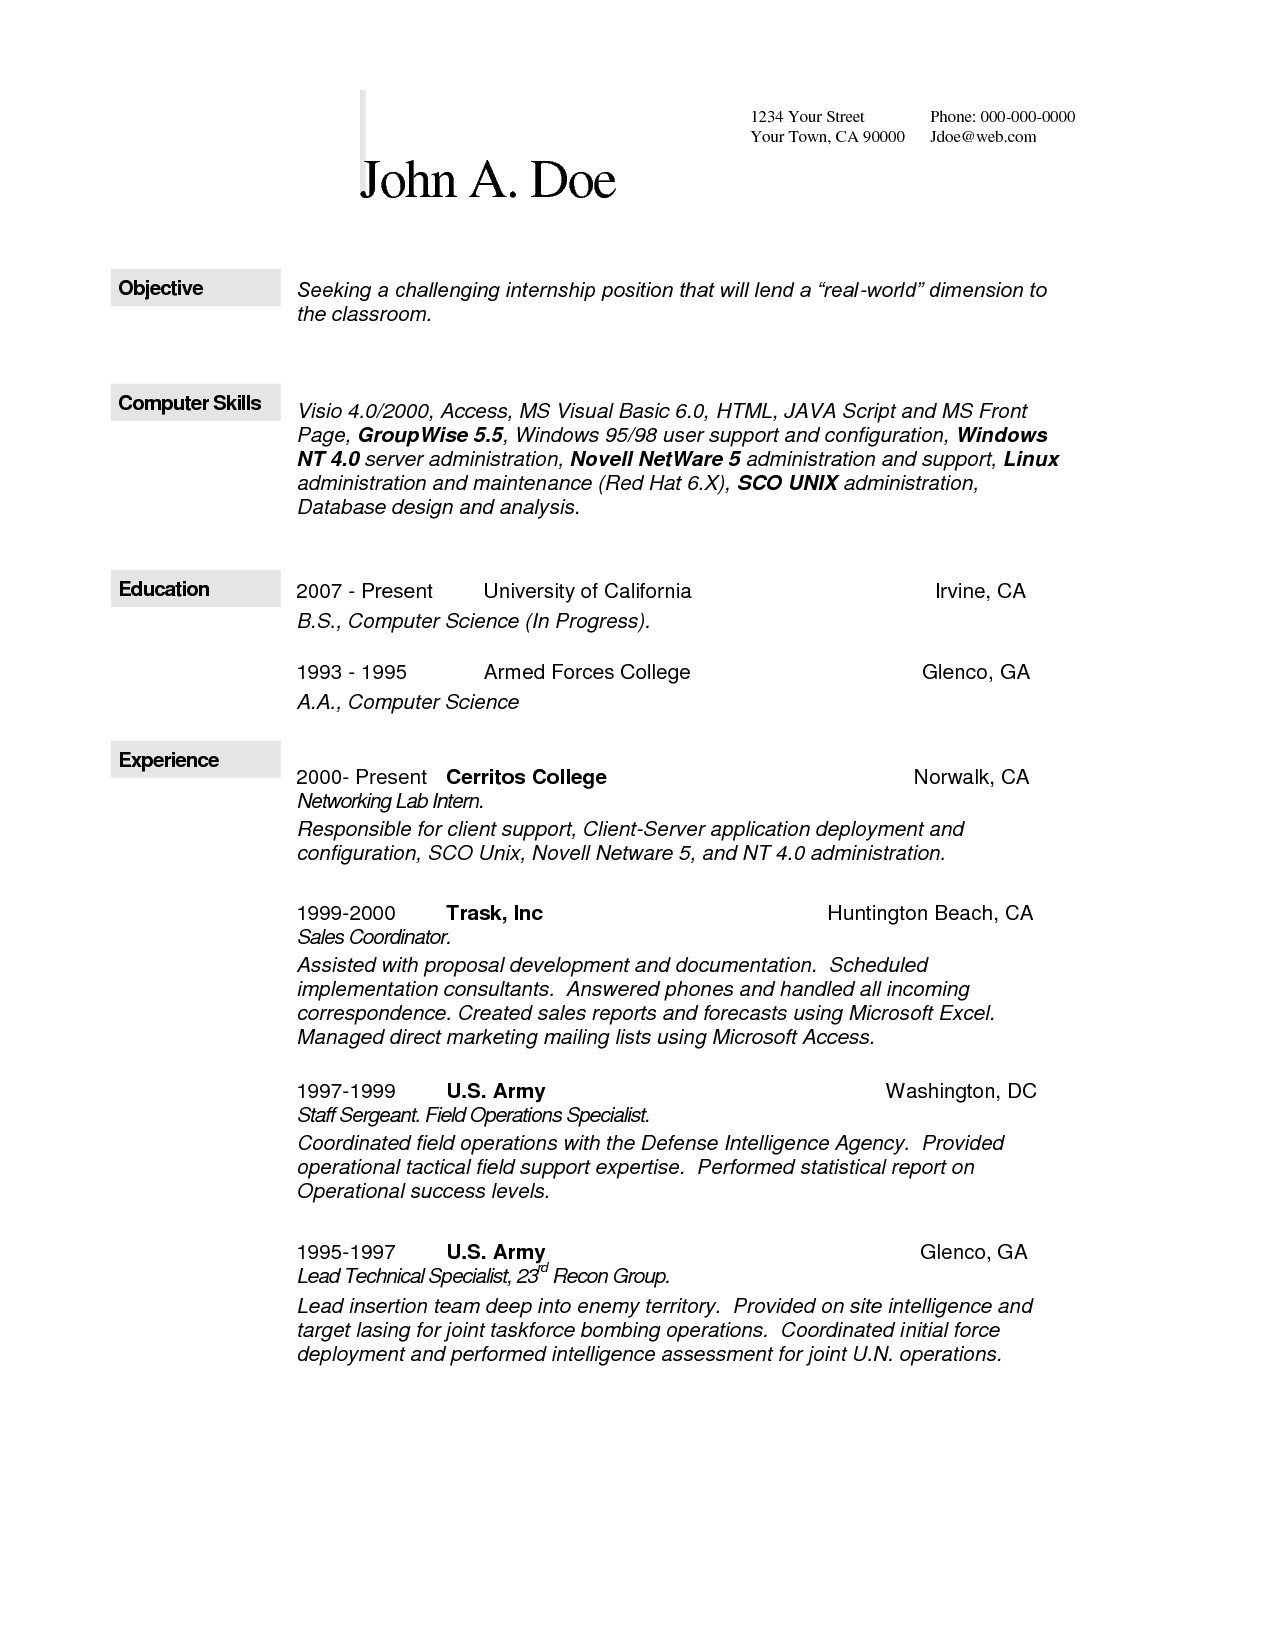 Resume for Computer Science Internship - Awesome Omputer Science Resume Example